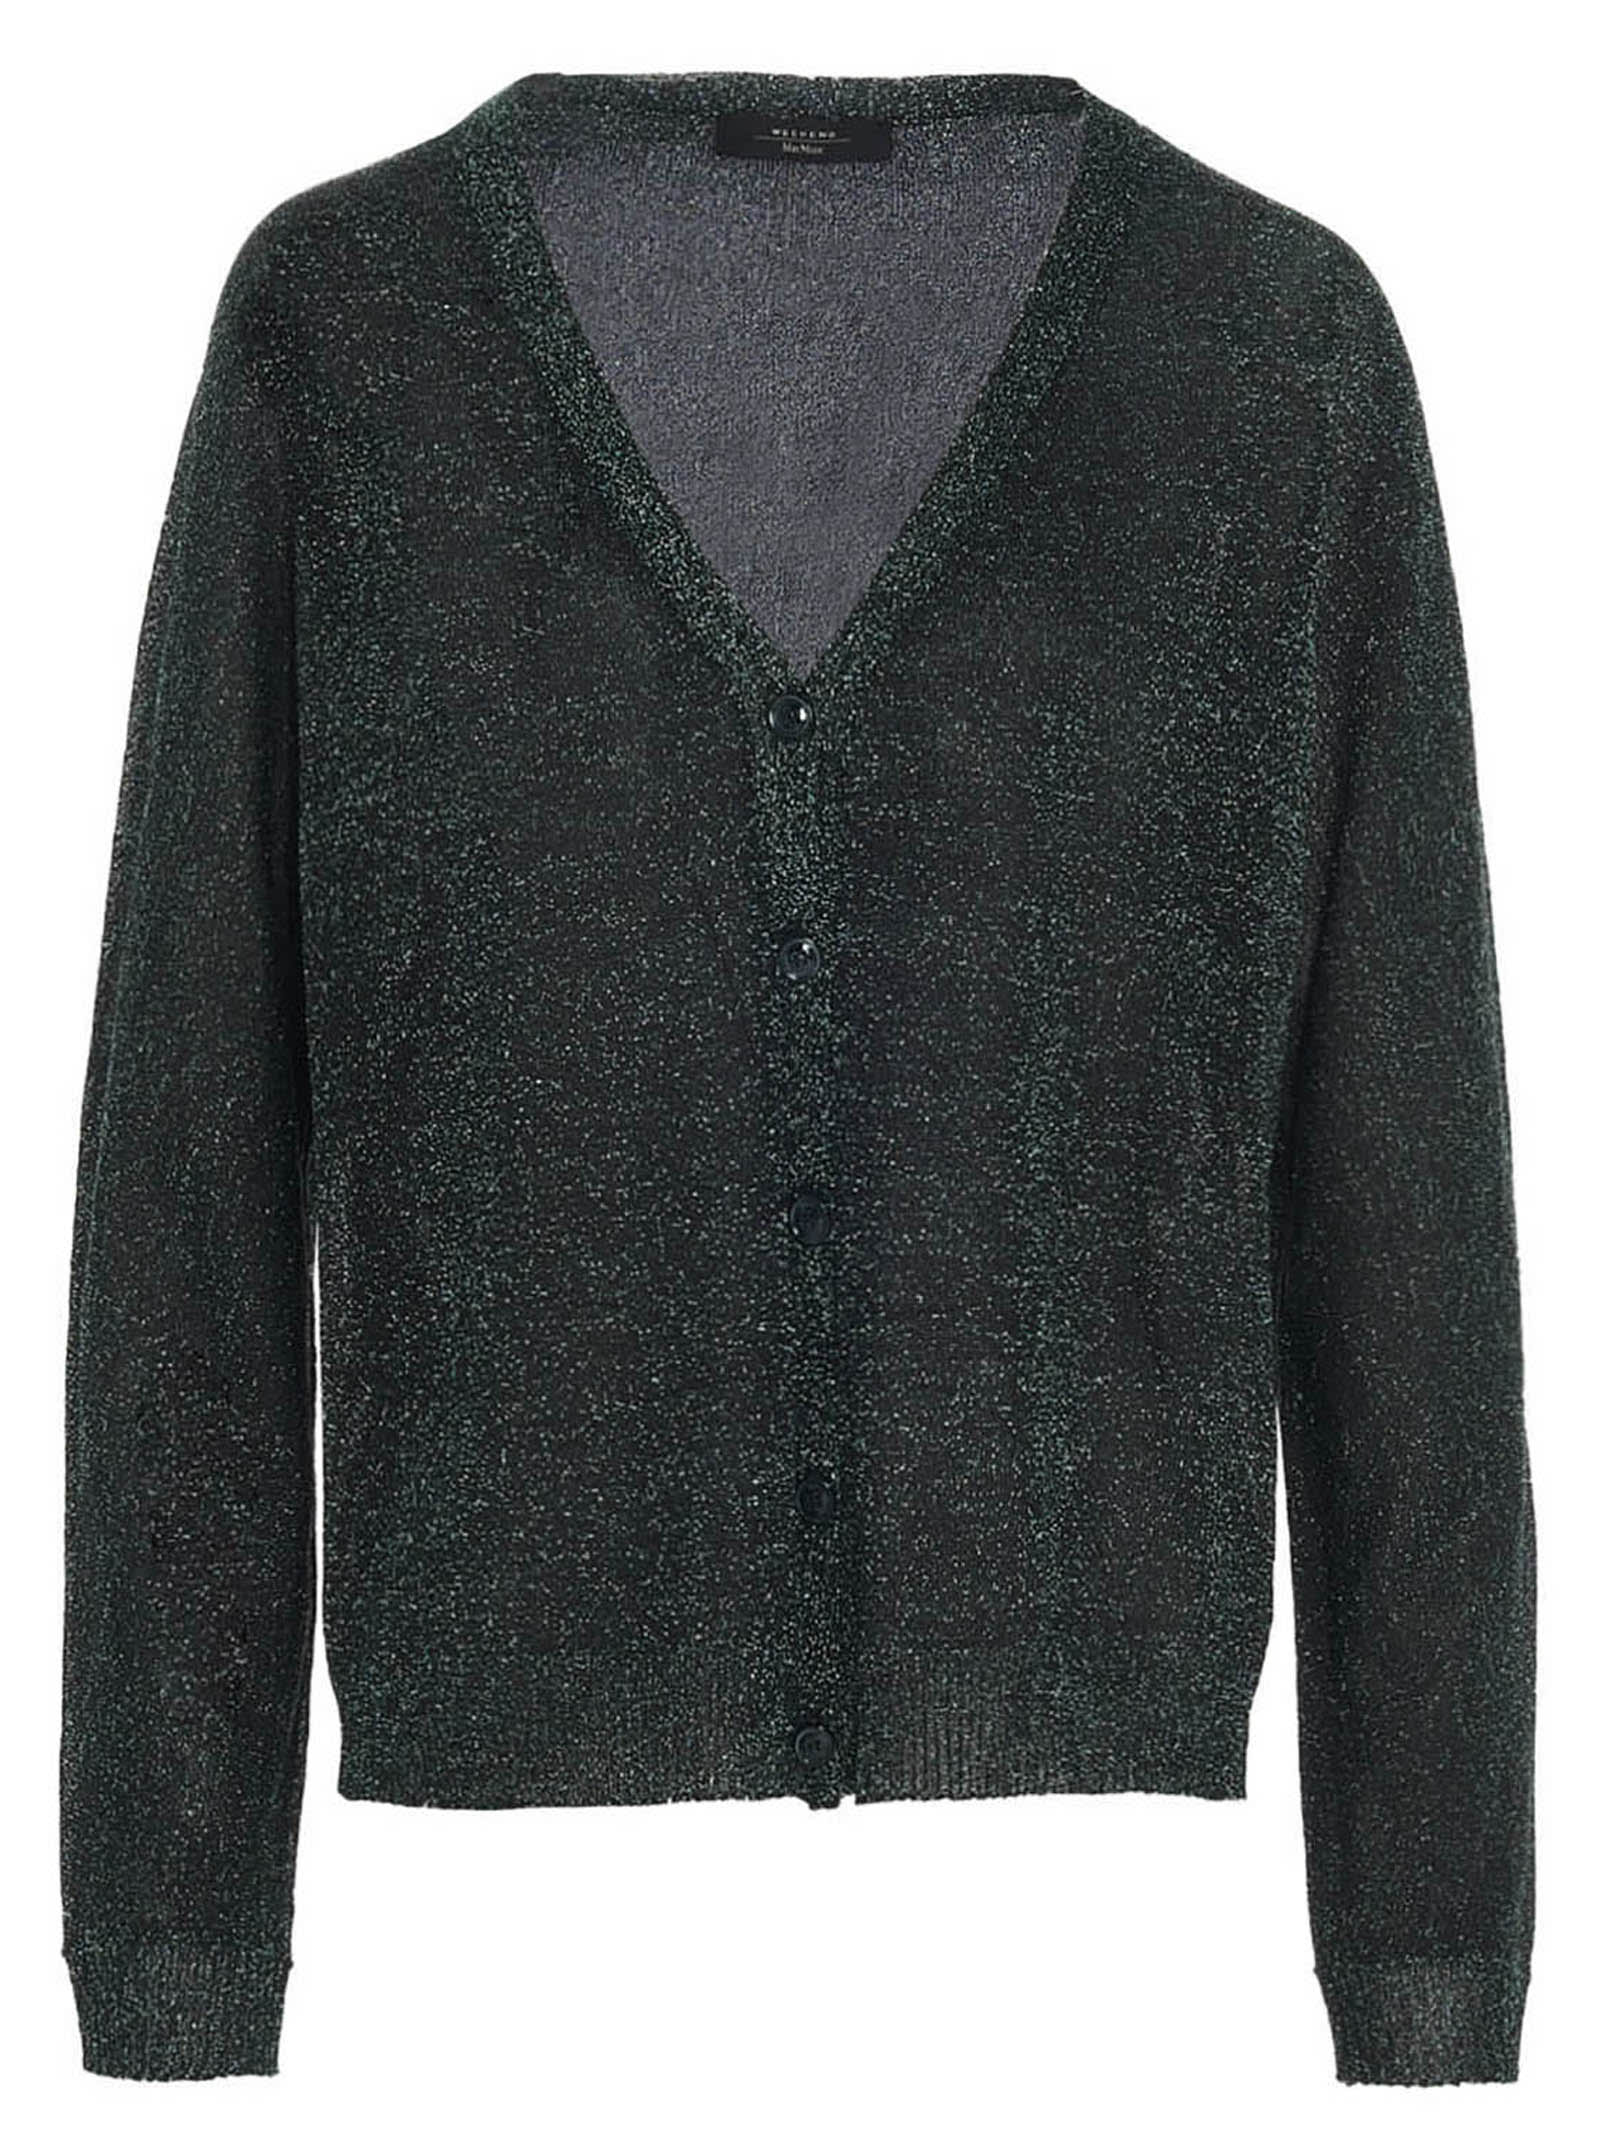 Weekend Max Mara TASCA SWEATER